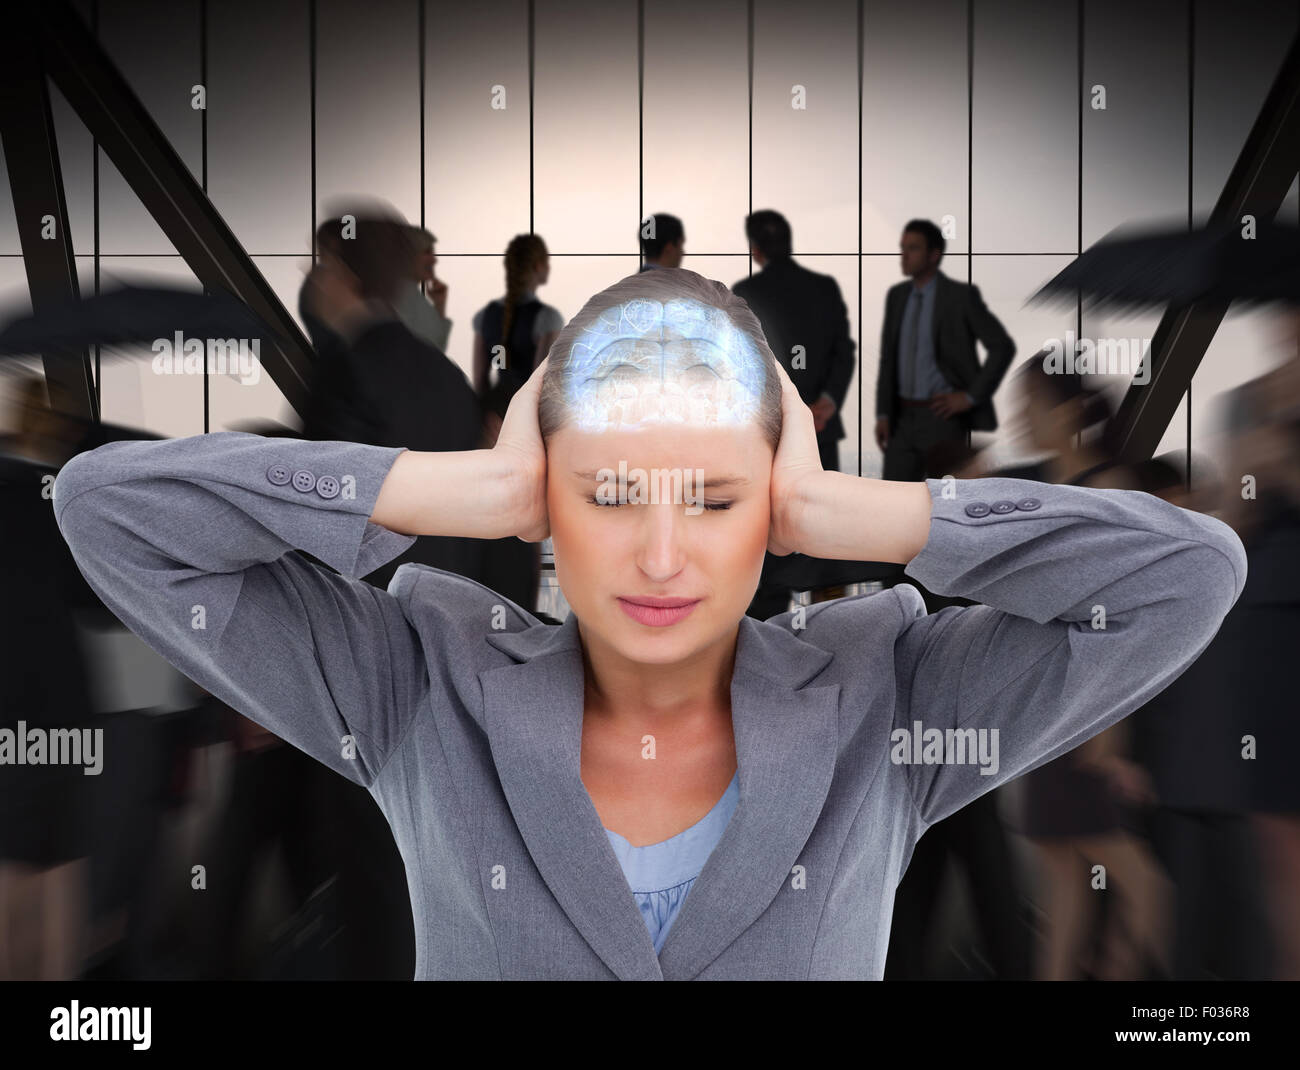 Composite image of close up of annoyed tradeswoman covering her ears - Stock Image